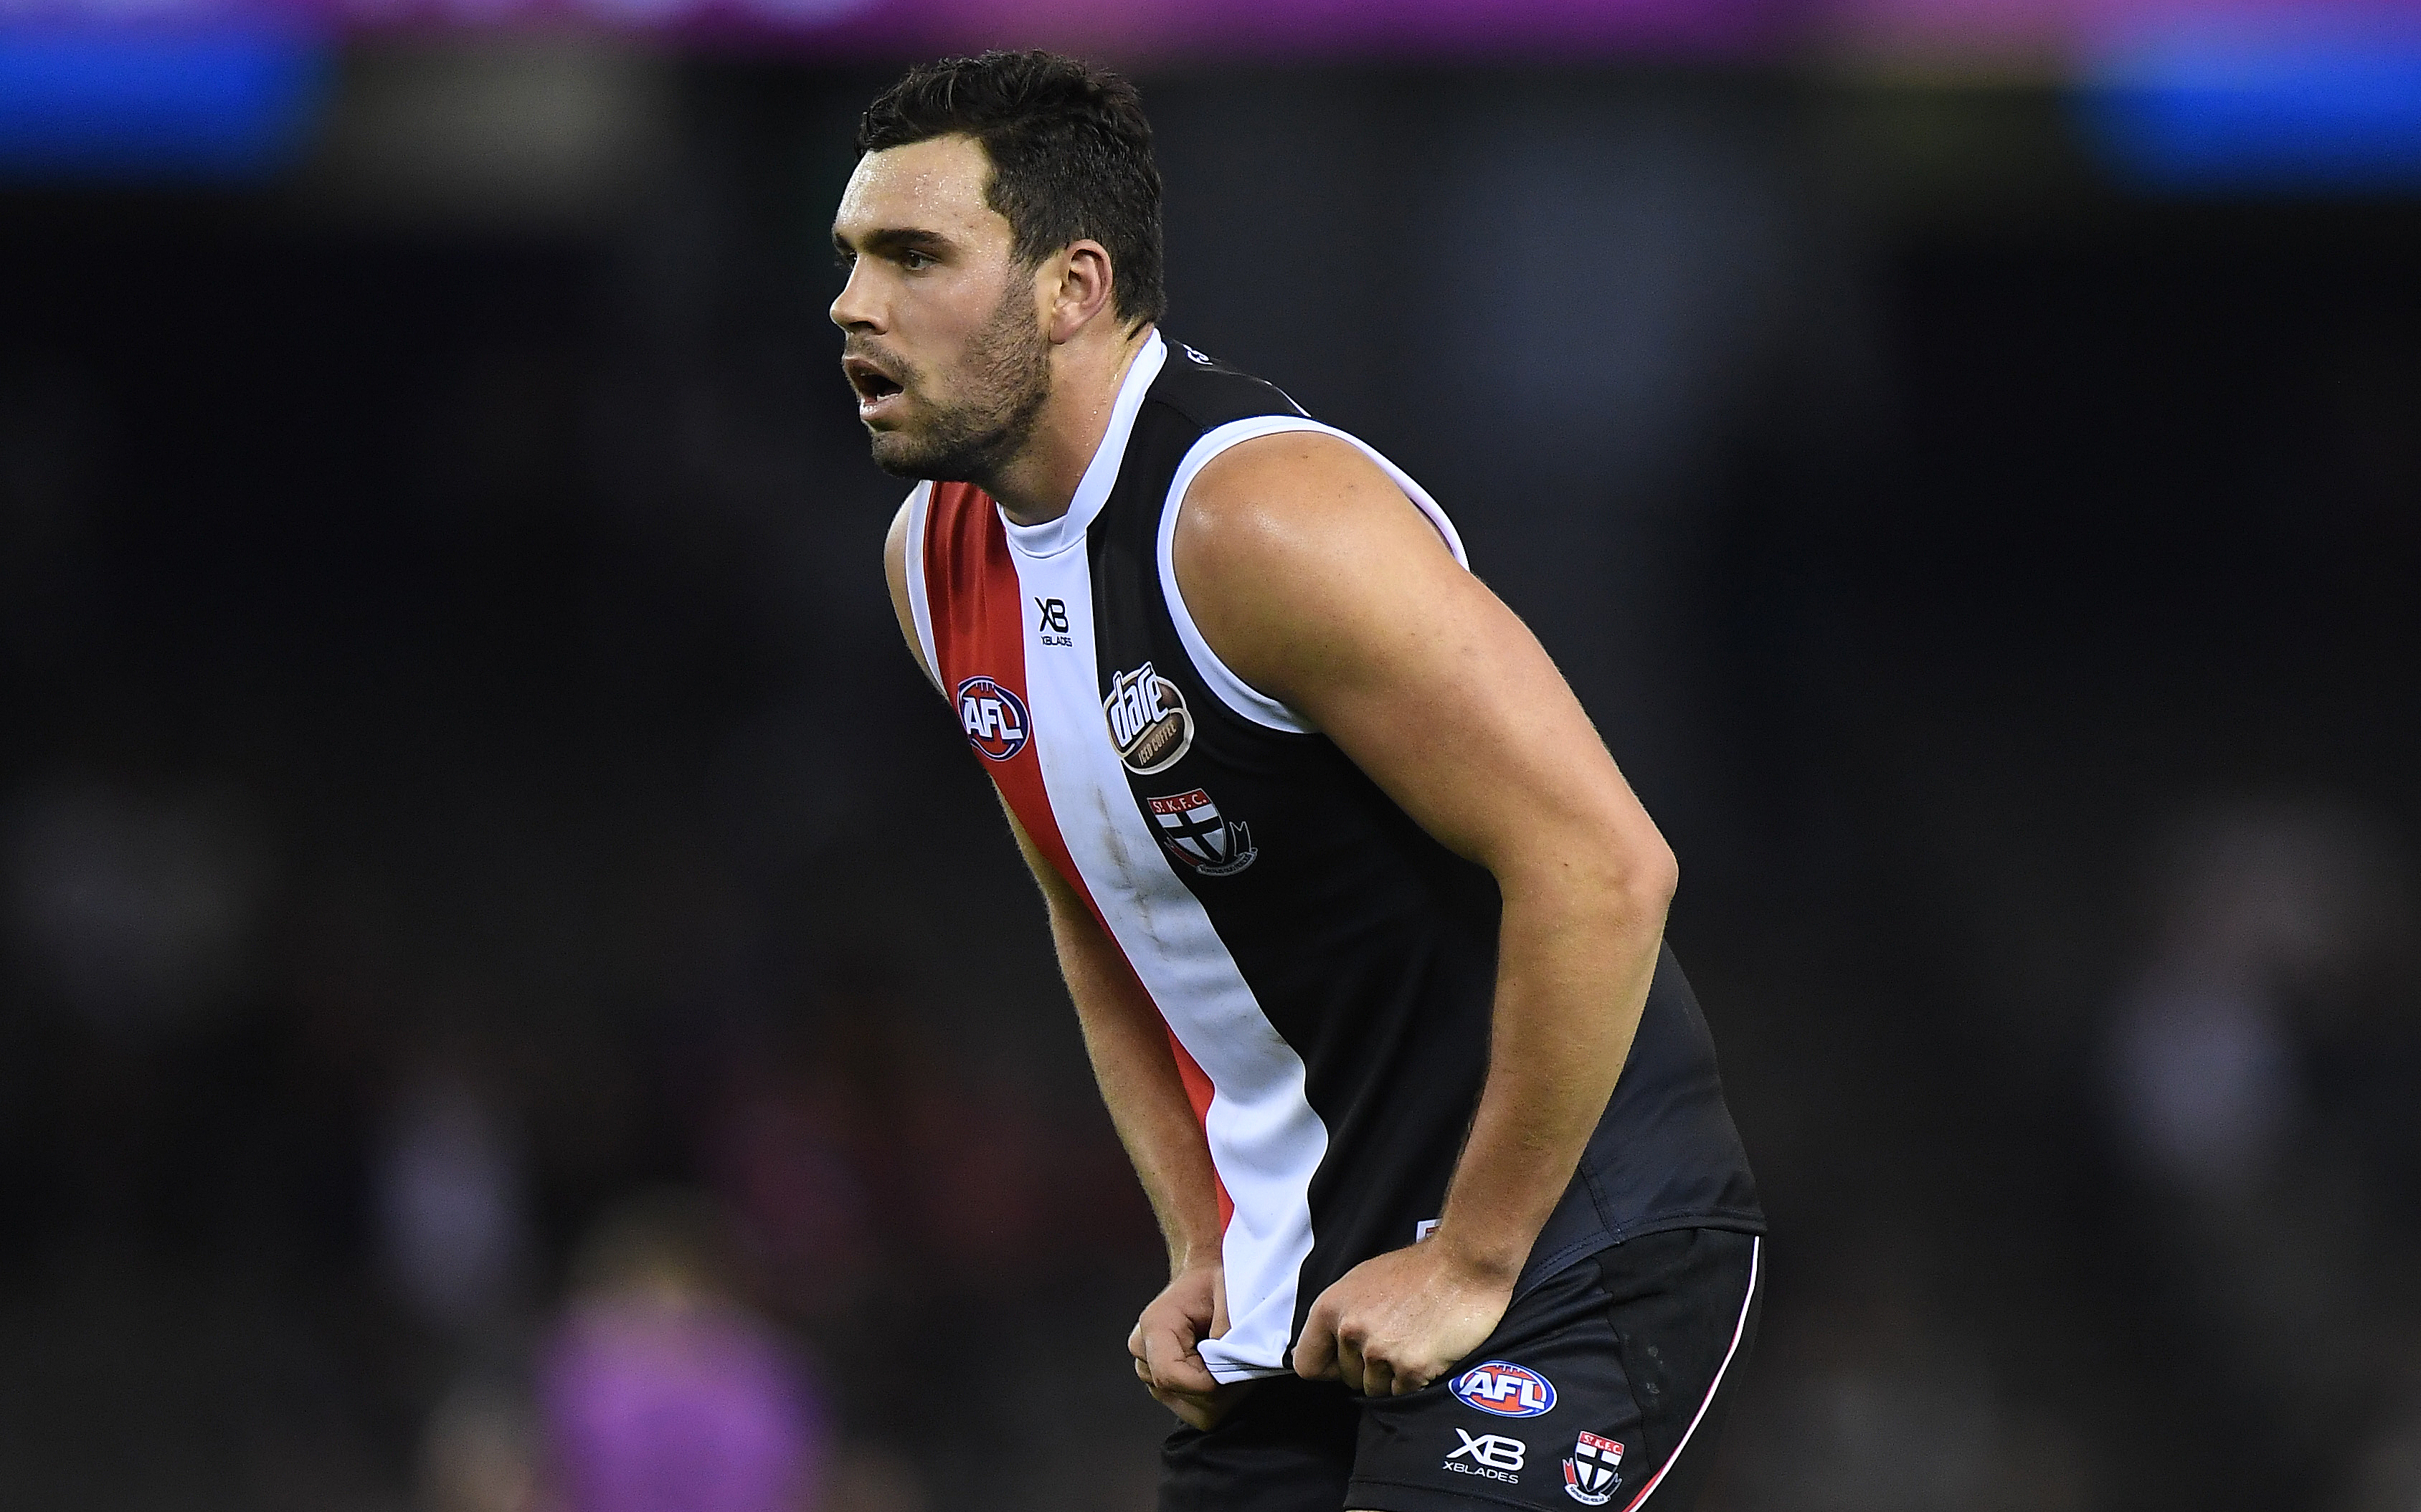 St Kilda youngster 'strongly considering his future'